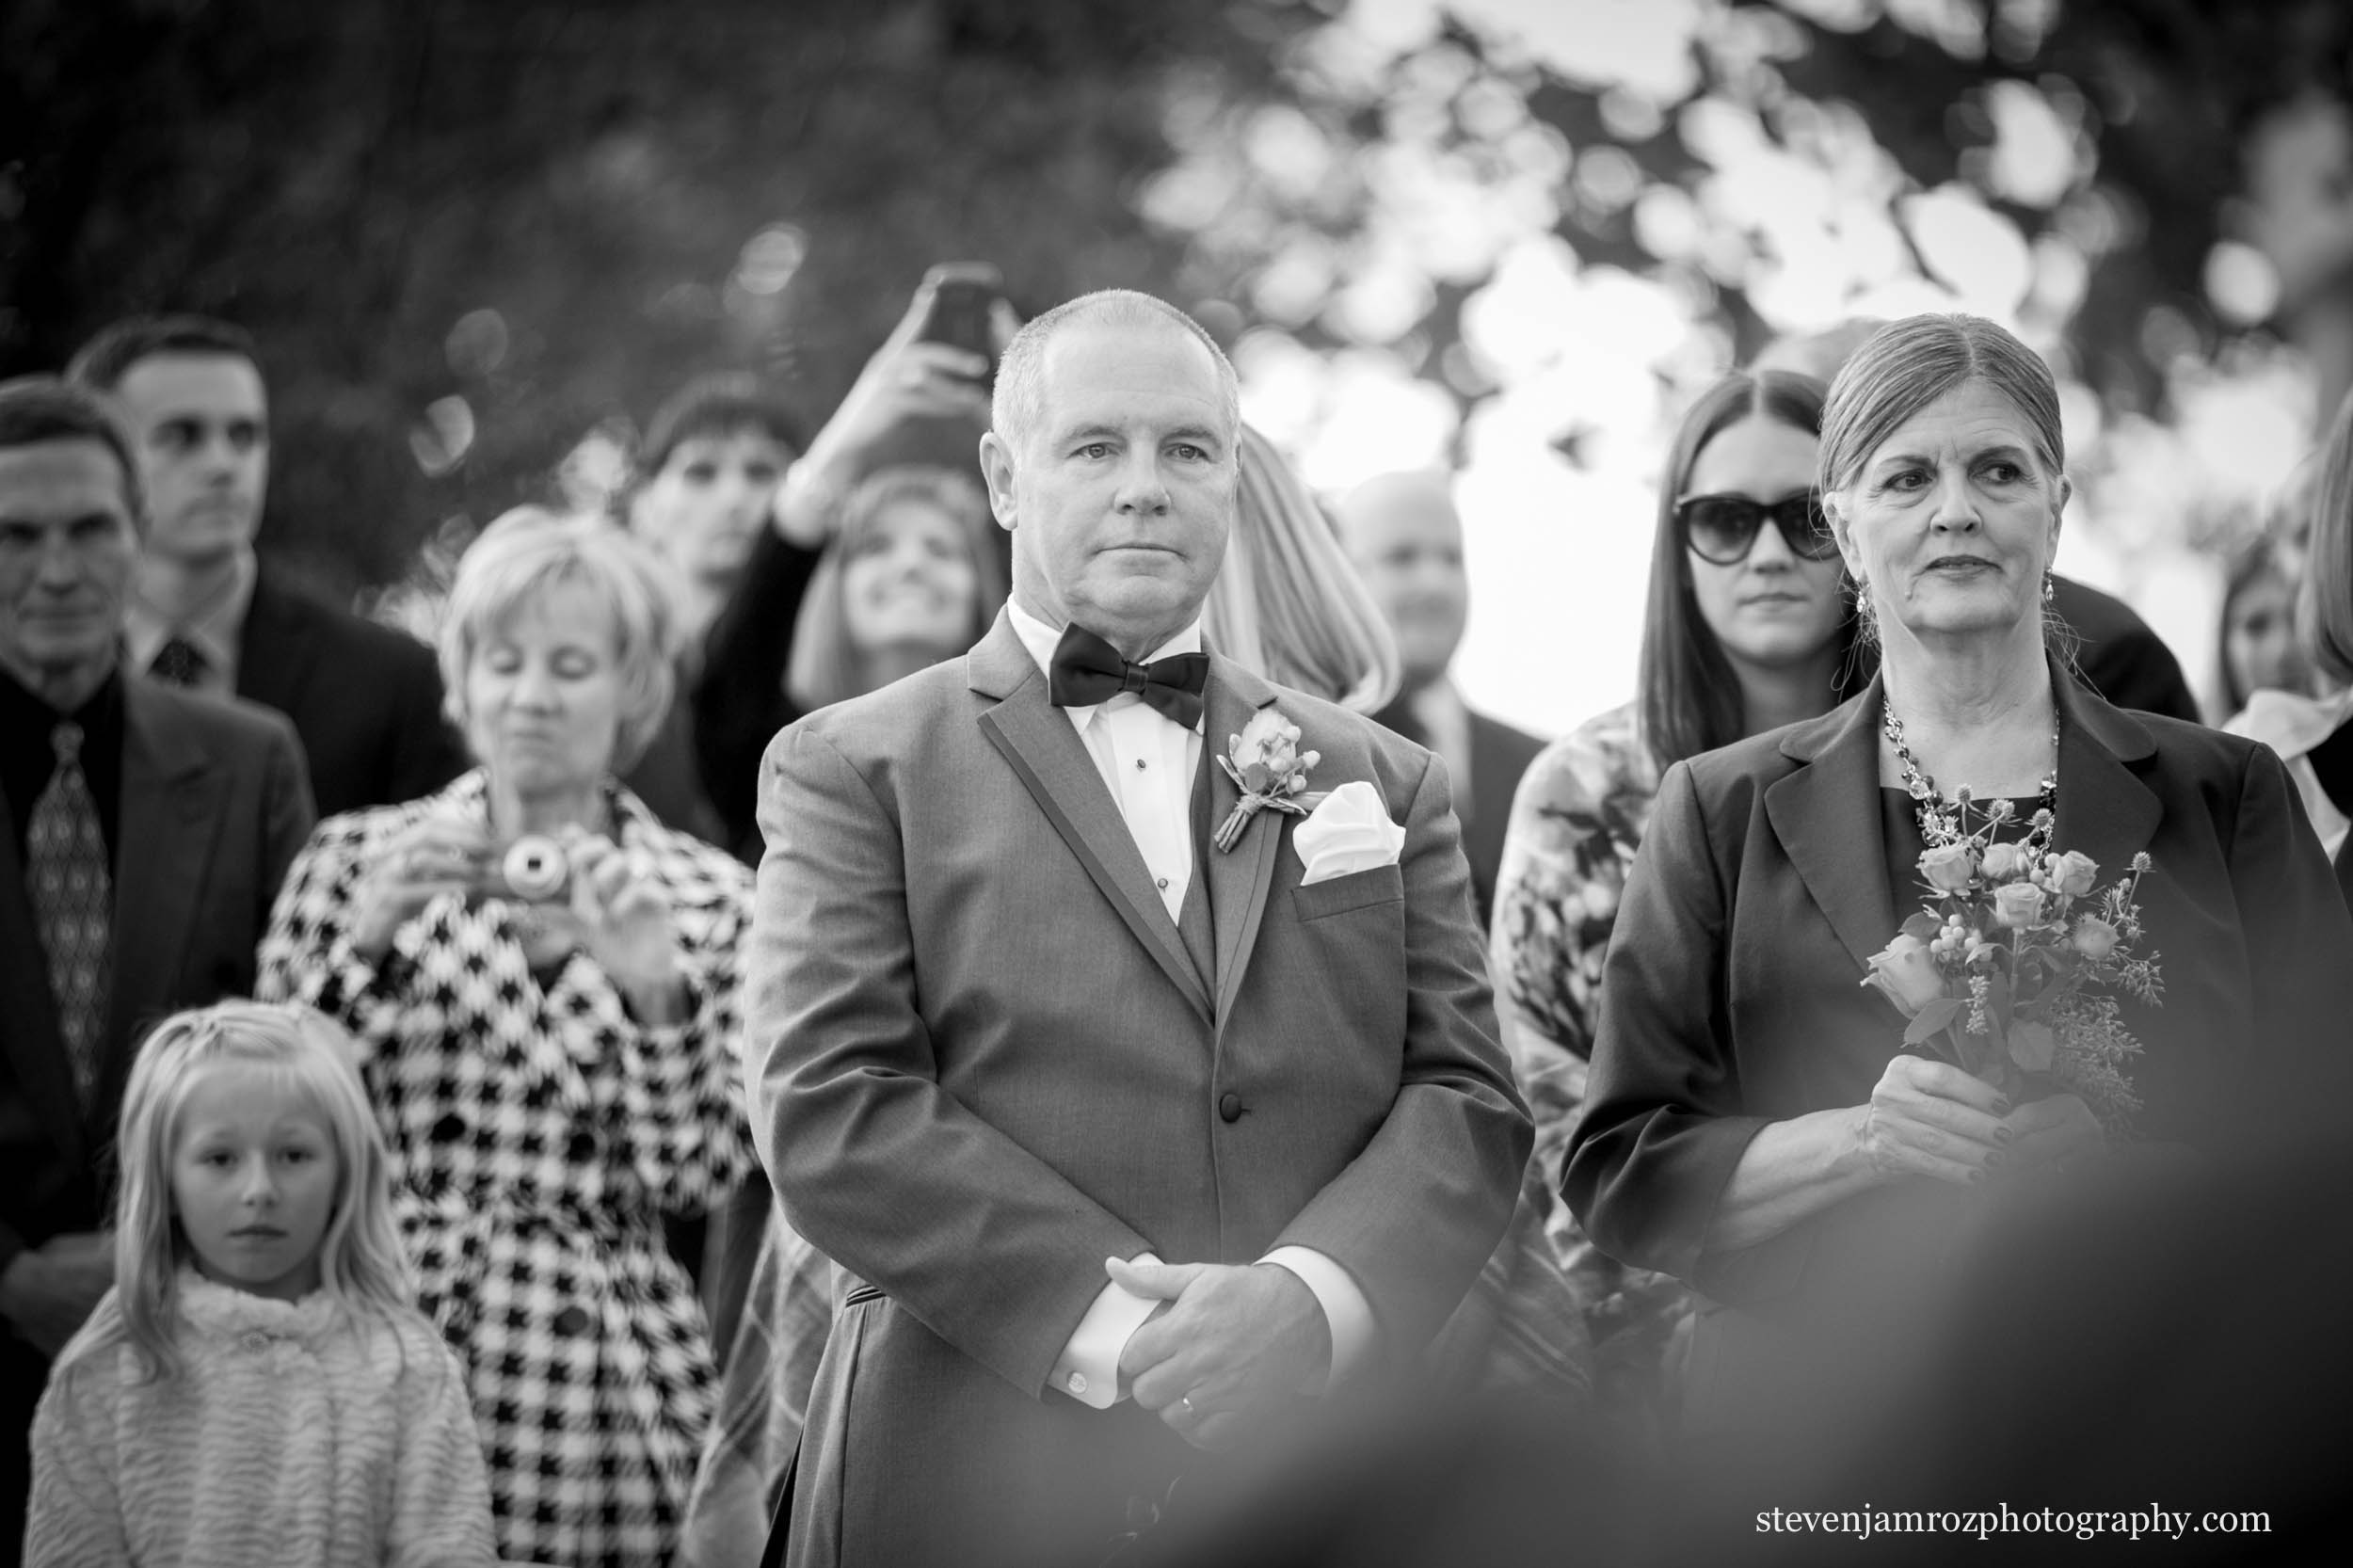 father-watches-bride-get-married-wedding-photographer-steven-jamroz-0713.jpg